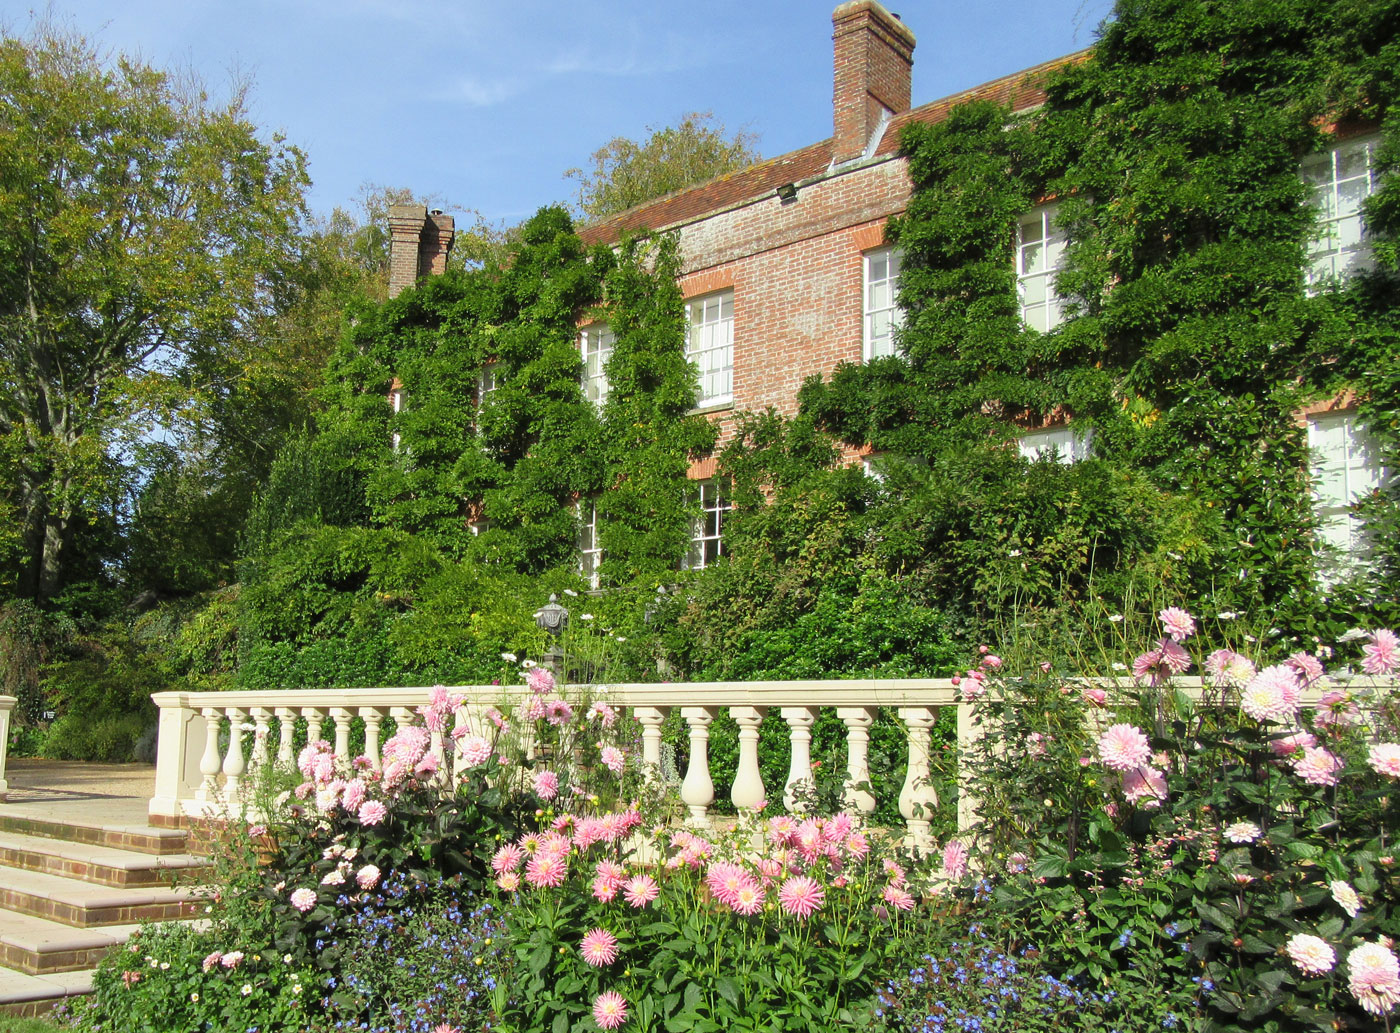 Home - Pashley Manor Gardens